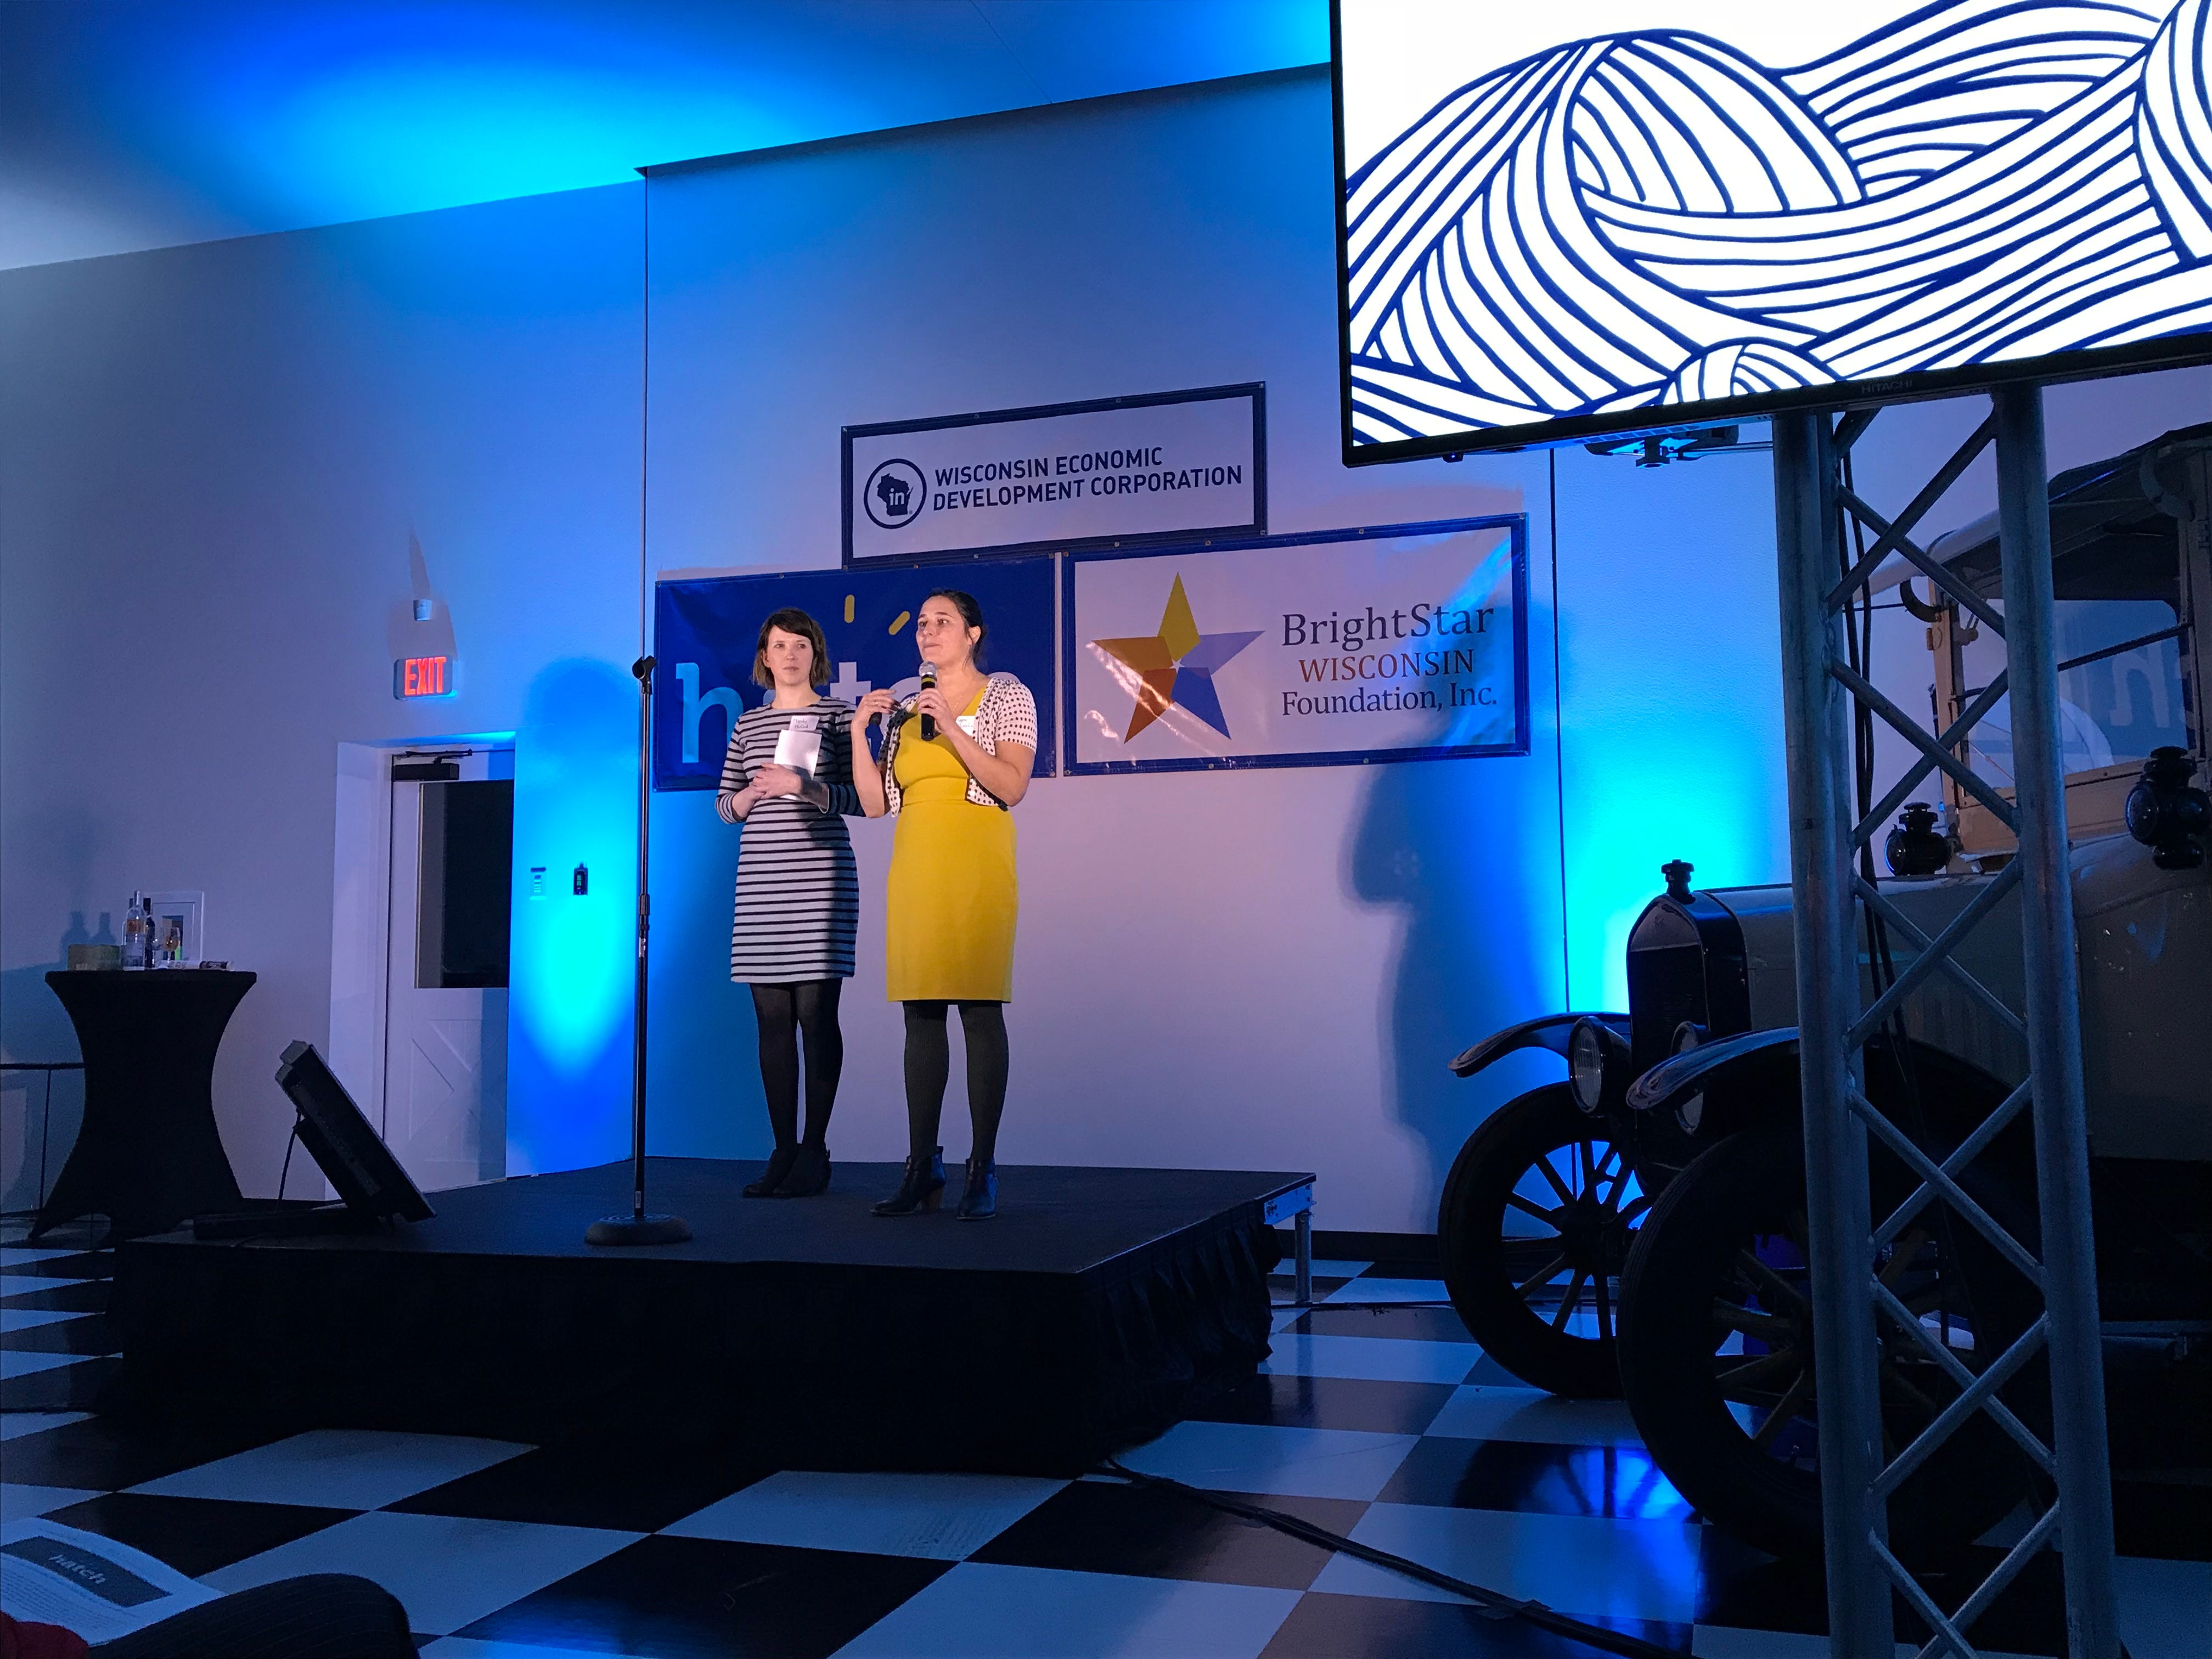 Mindy McCord and Layne Cozzolino pitched their product Siren Shrub at the Hatch finale in central Wisconsin.